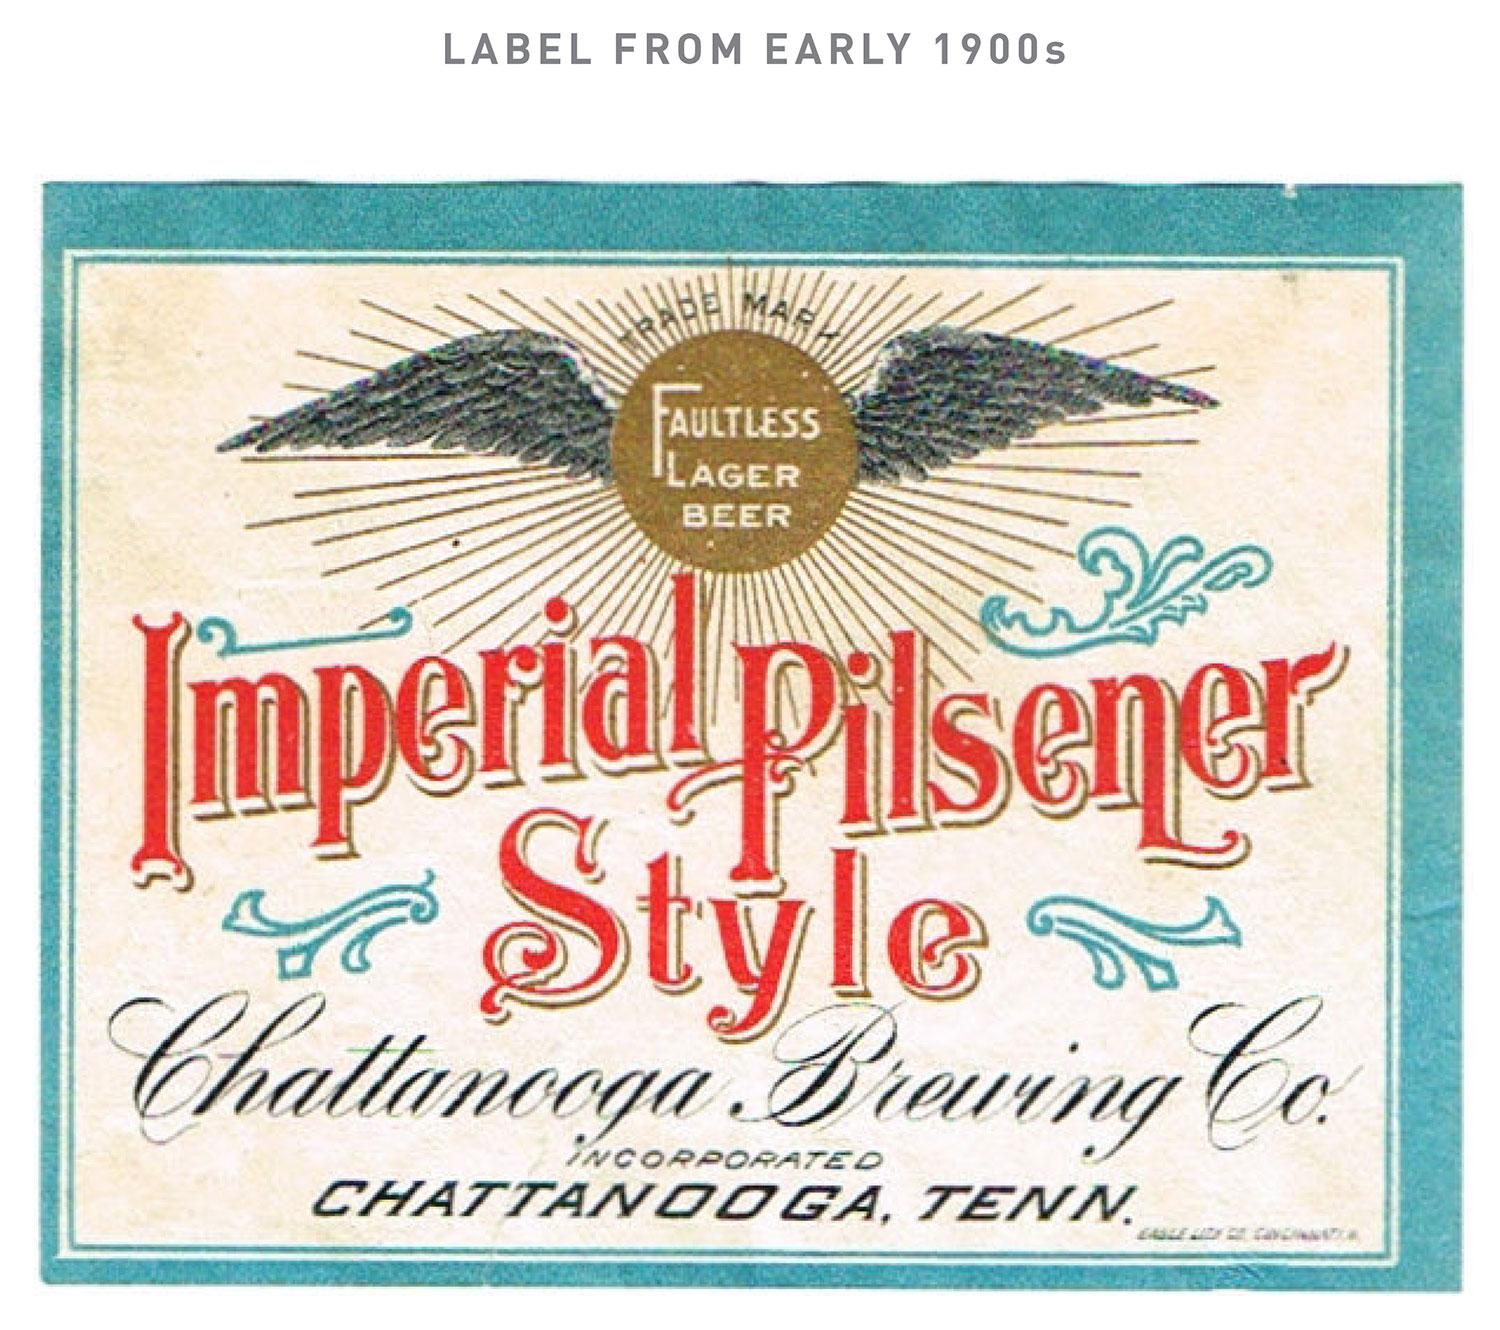 Chattanooga Brewing Co. Label